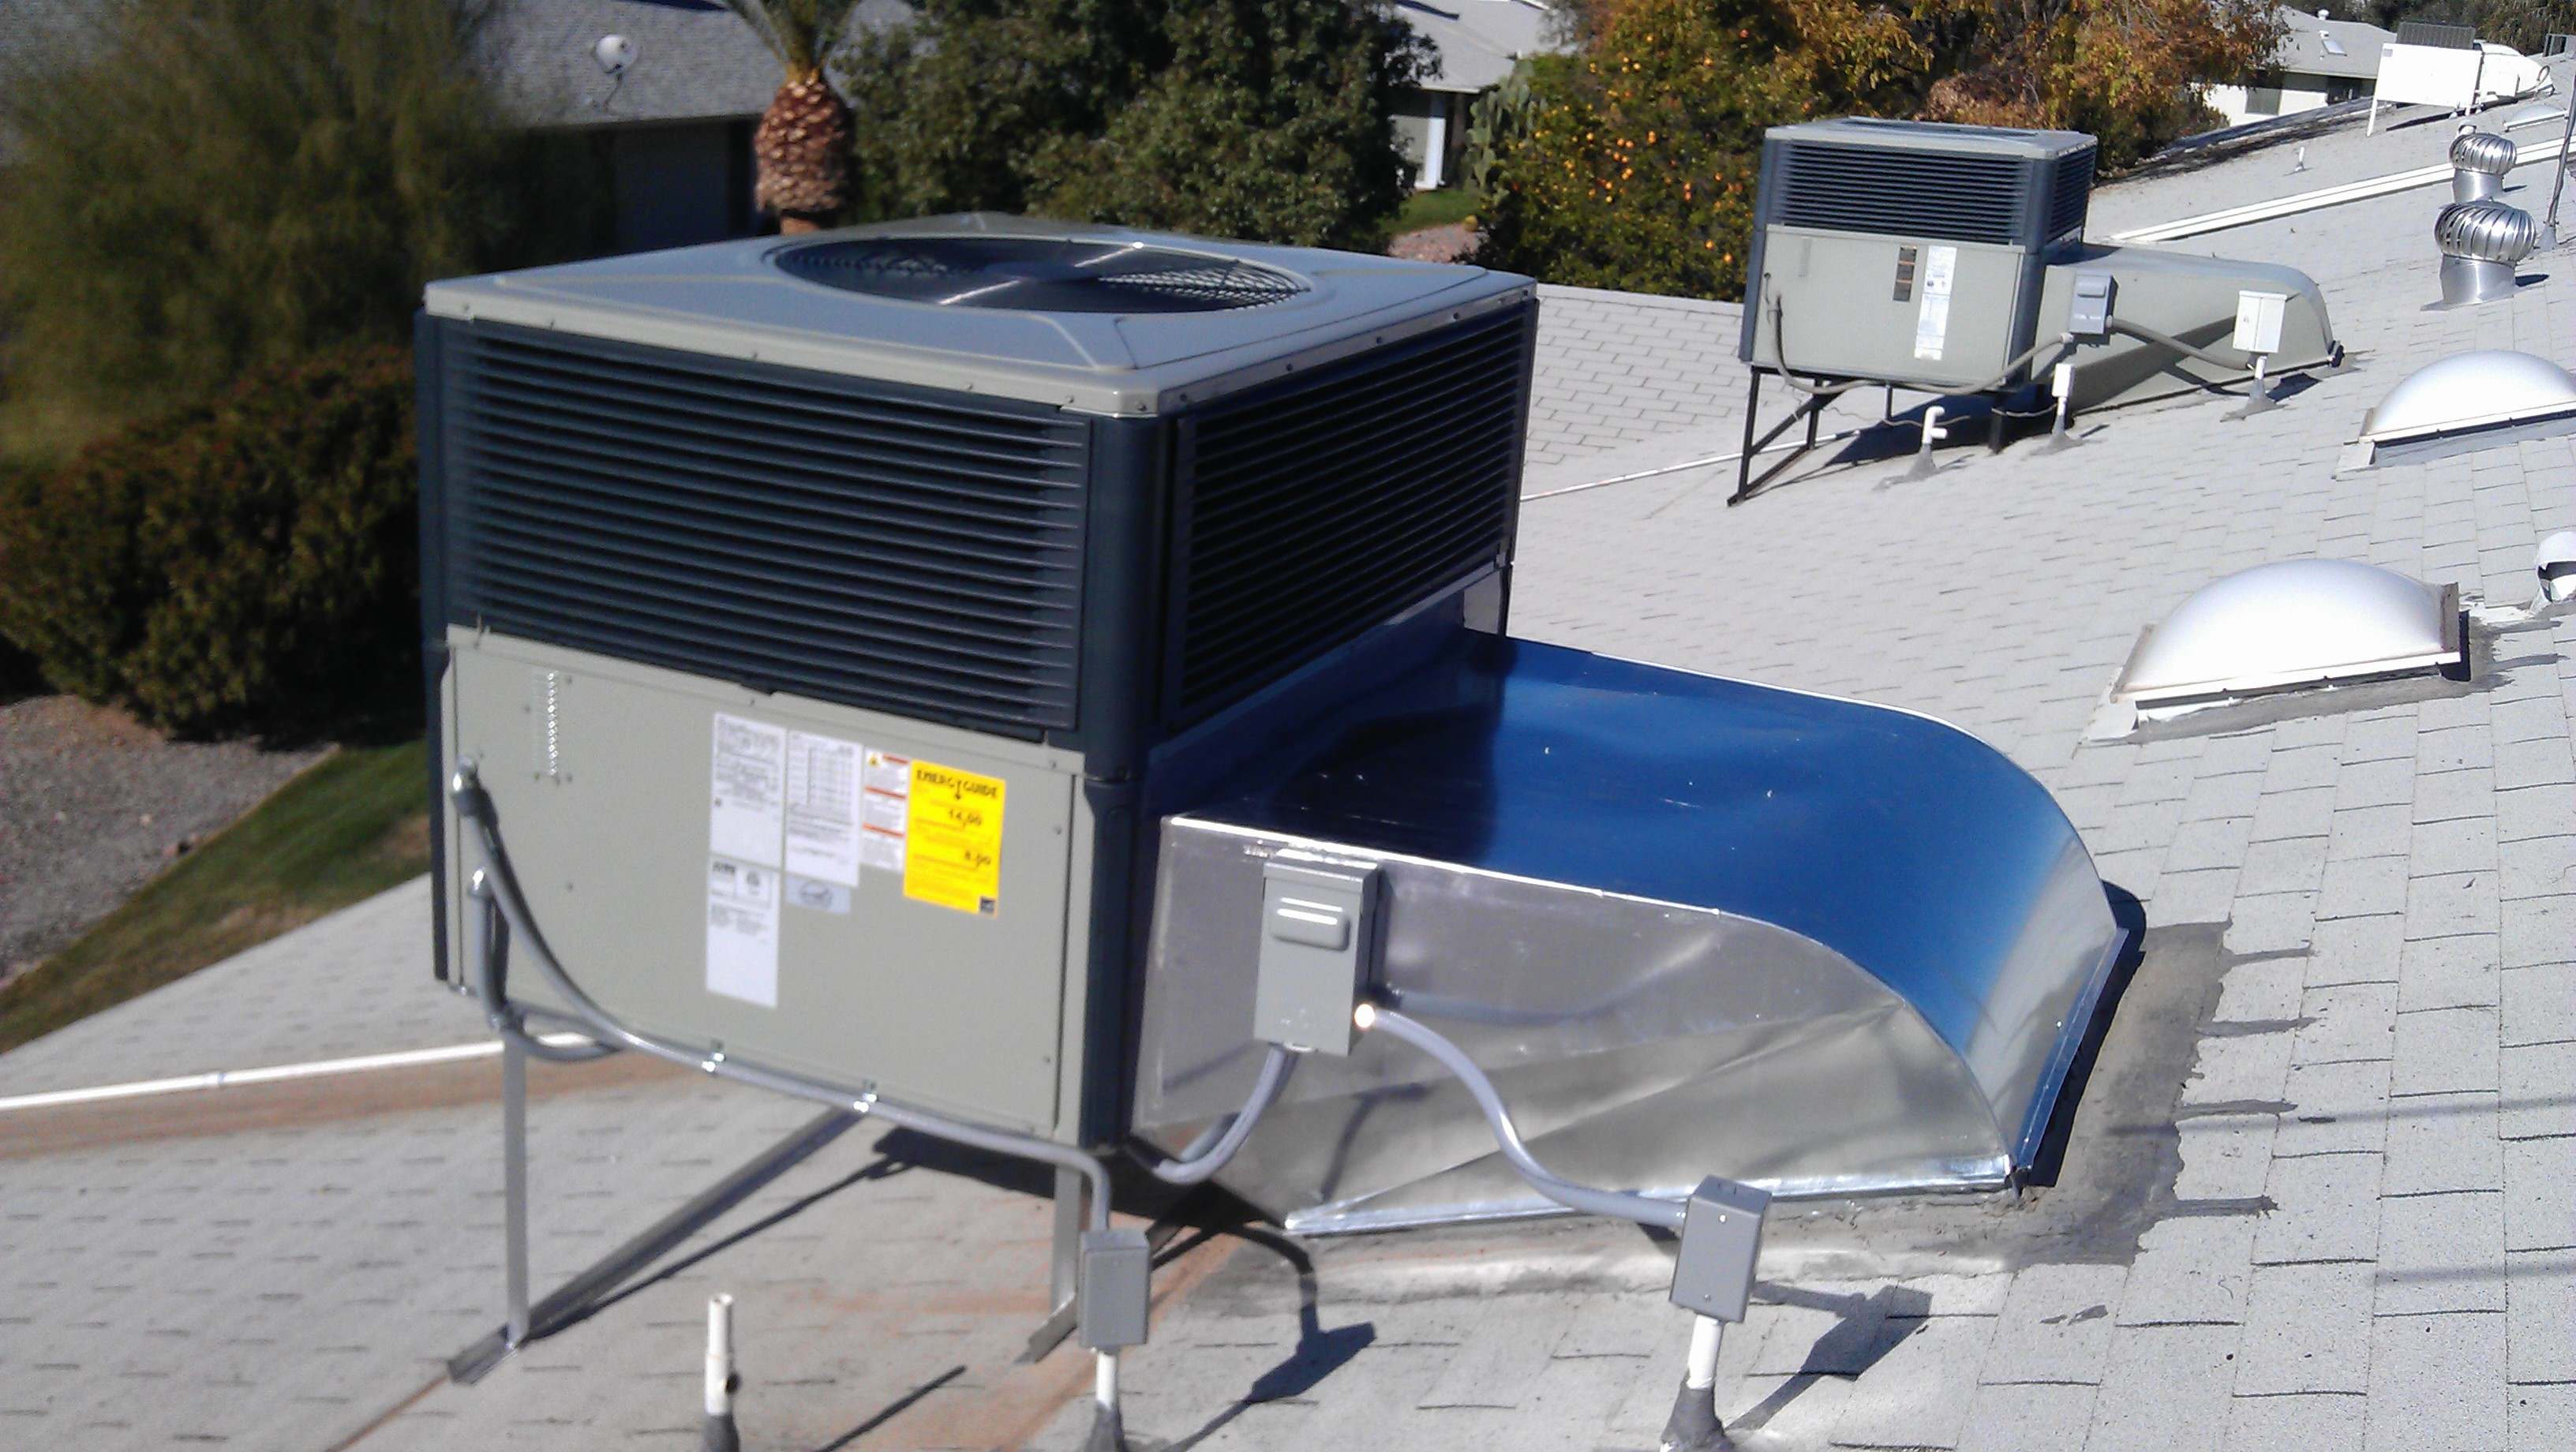 #2C4C7D Arizona Air Conditioning And Heating Installation And  Most Effective 6185 Roof Mounted Ac Heater Units pictures with 3264x1840 px on helpvideos.info - Air Conditioners, Air Coolers and more